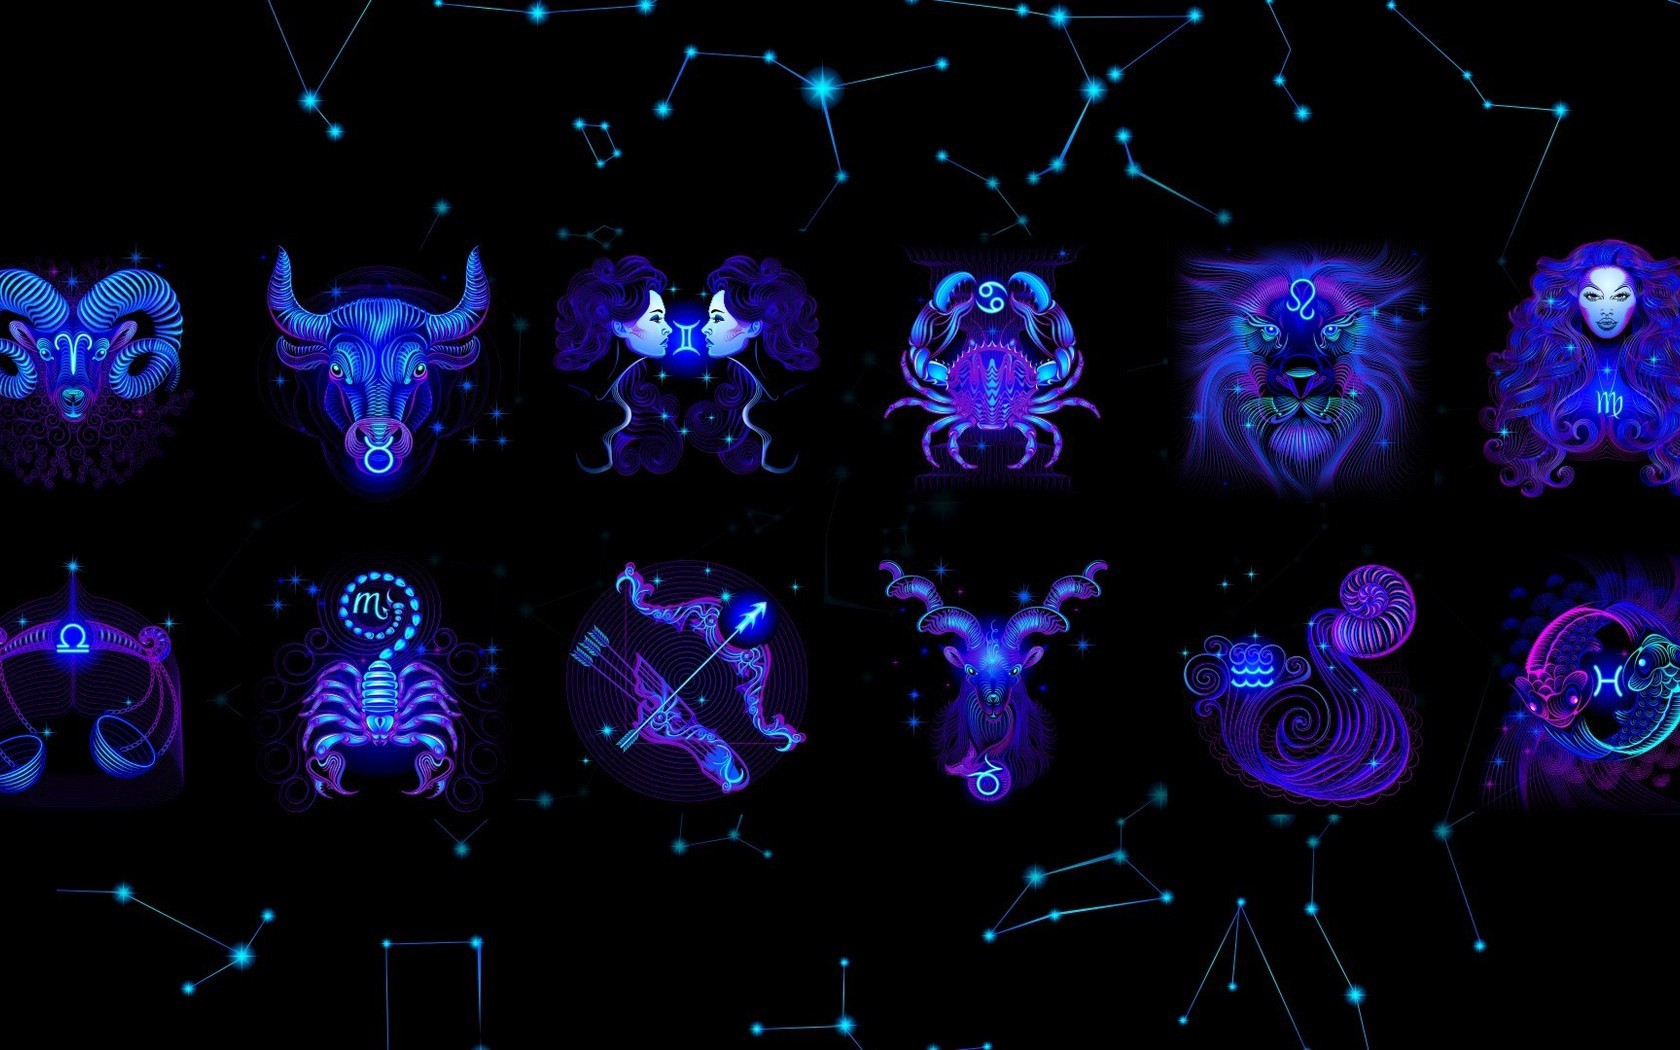 GAMES YOU MUST PLAY IF YOU ARE IN THIS ZODIAC SIGN - Little Plastic